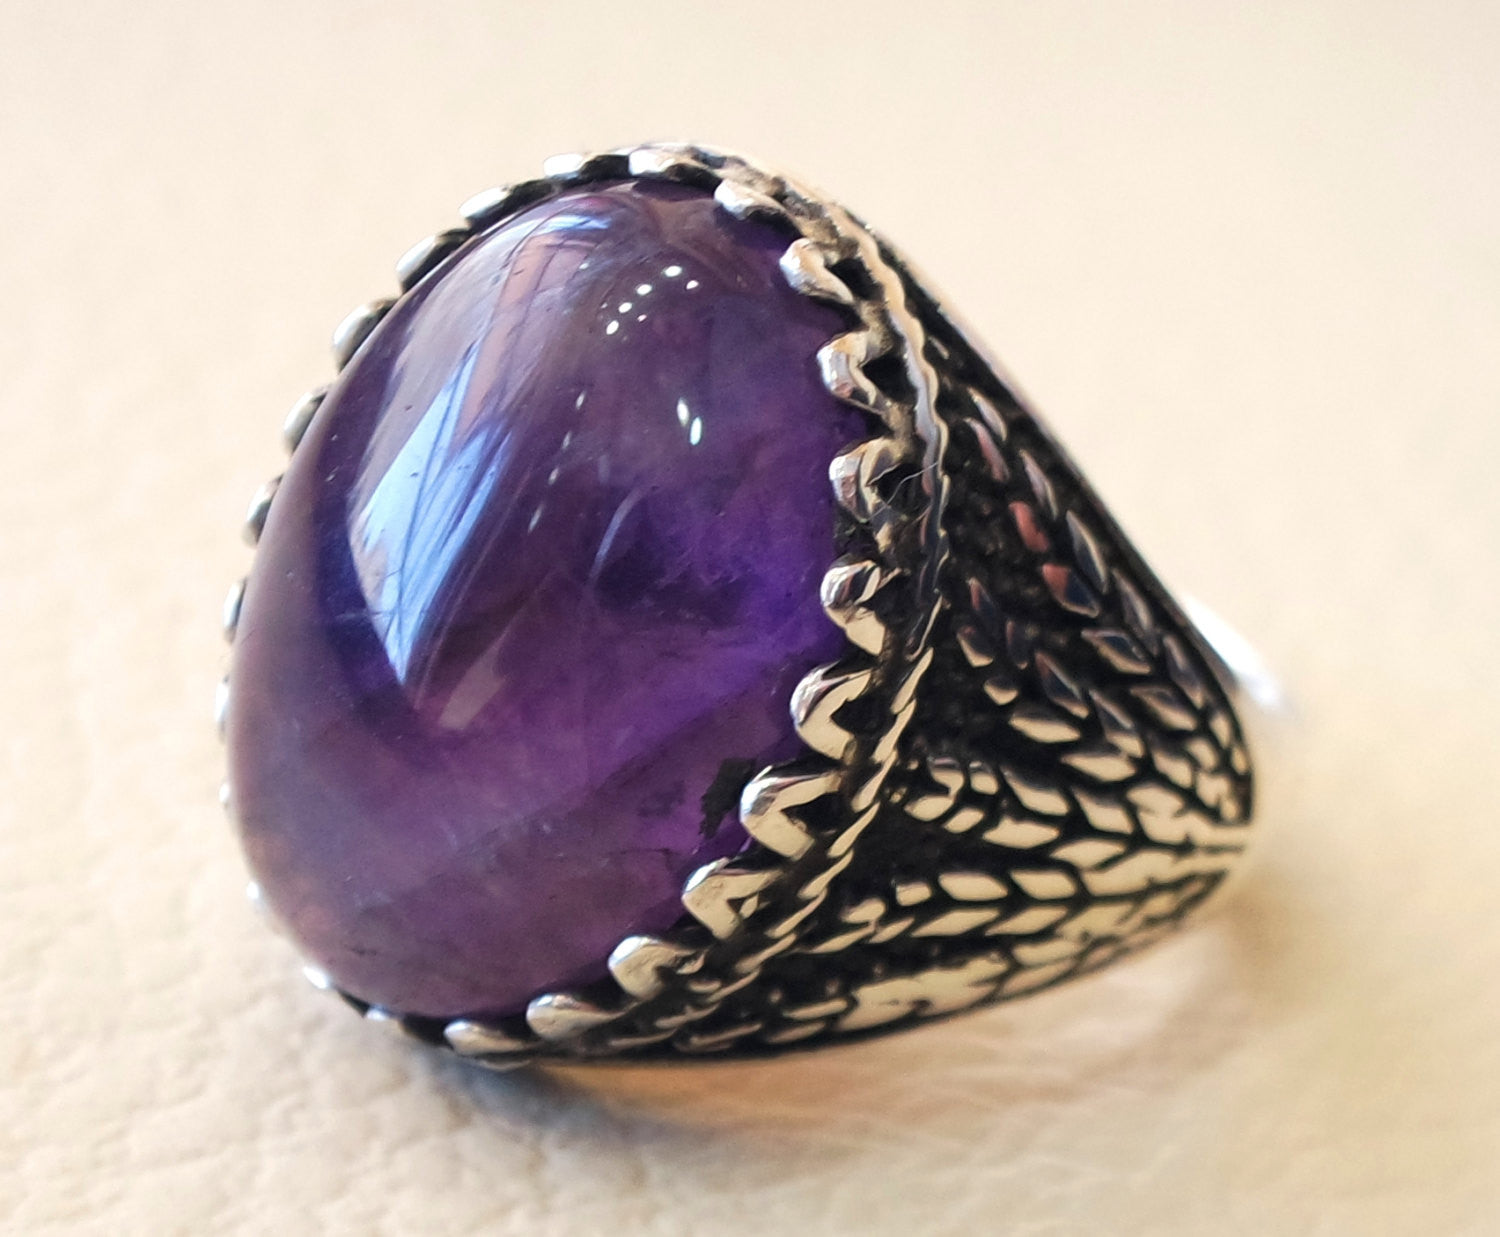 amethyst agate natural purple stone silver 925 men ring vintage arabic turkish ottoman antique style man jewelry oval cabochon all sizes